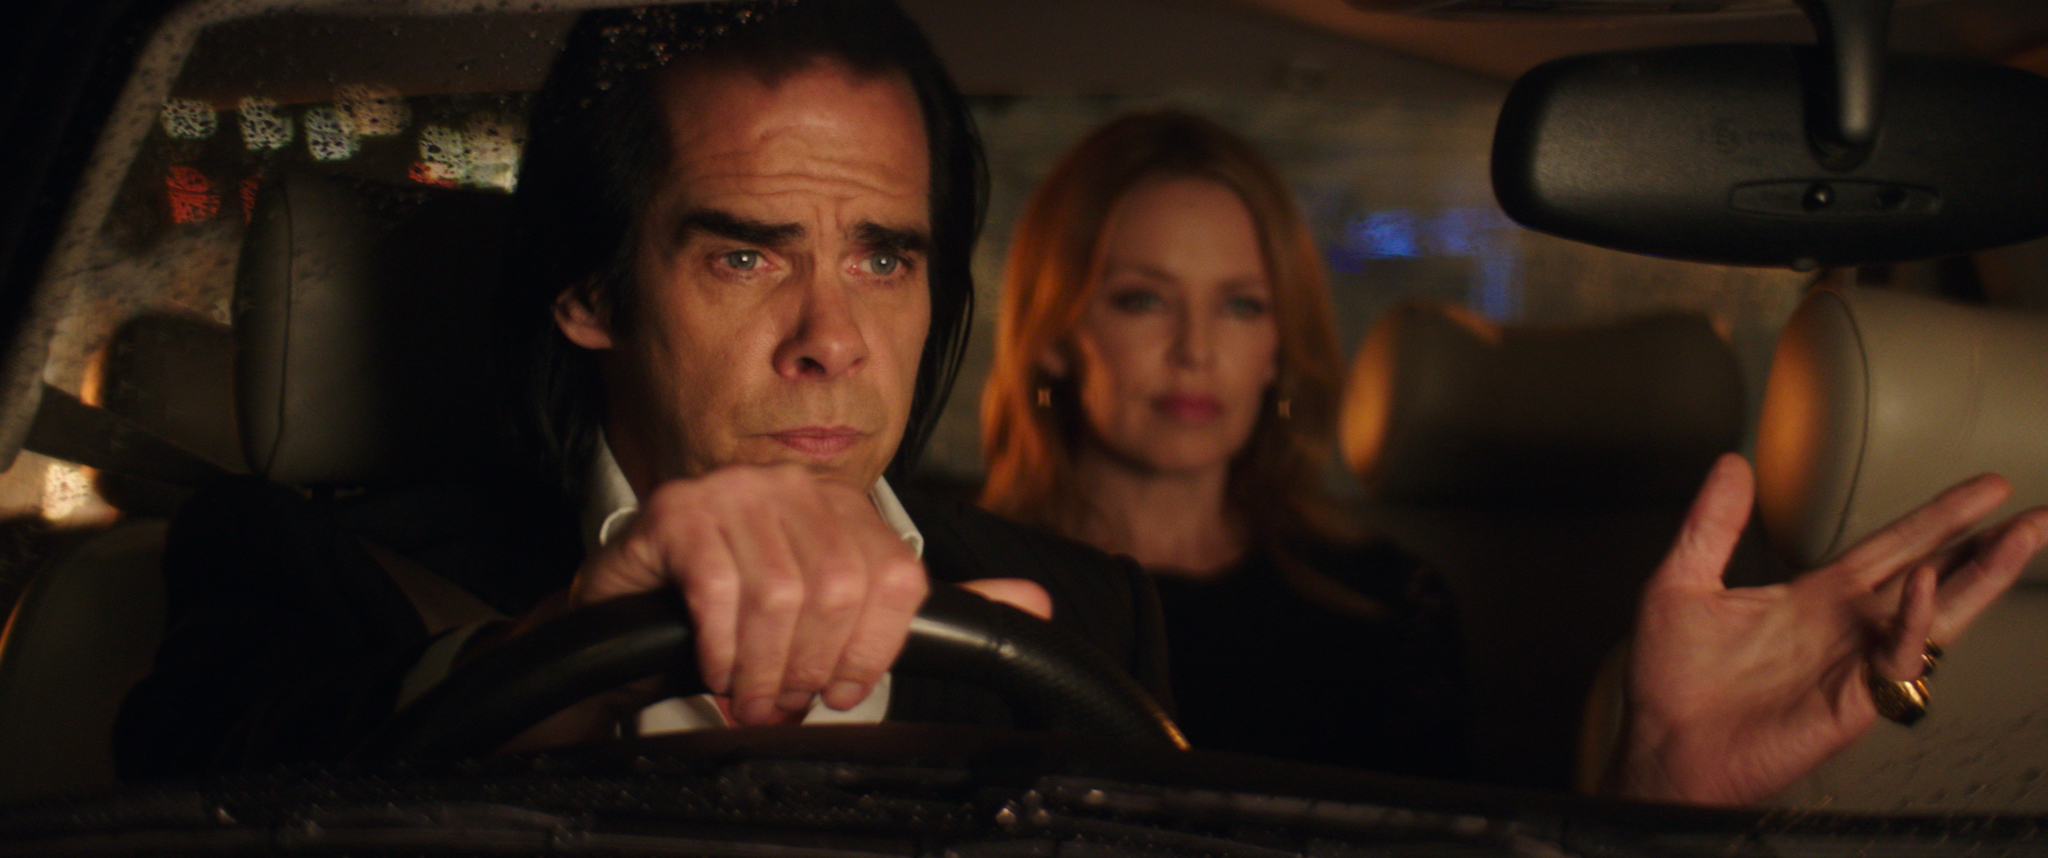 Kylie Minogue and Nick Cave in 20,000 Days on Earth (2014)